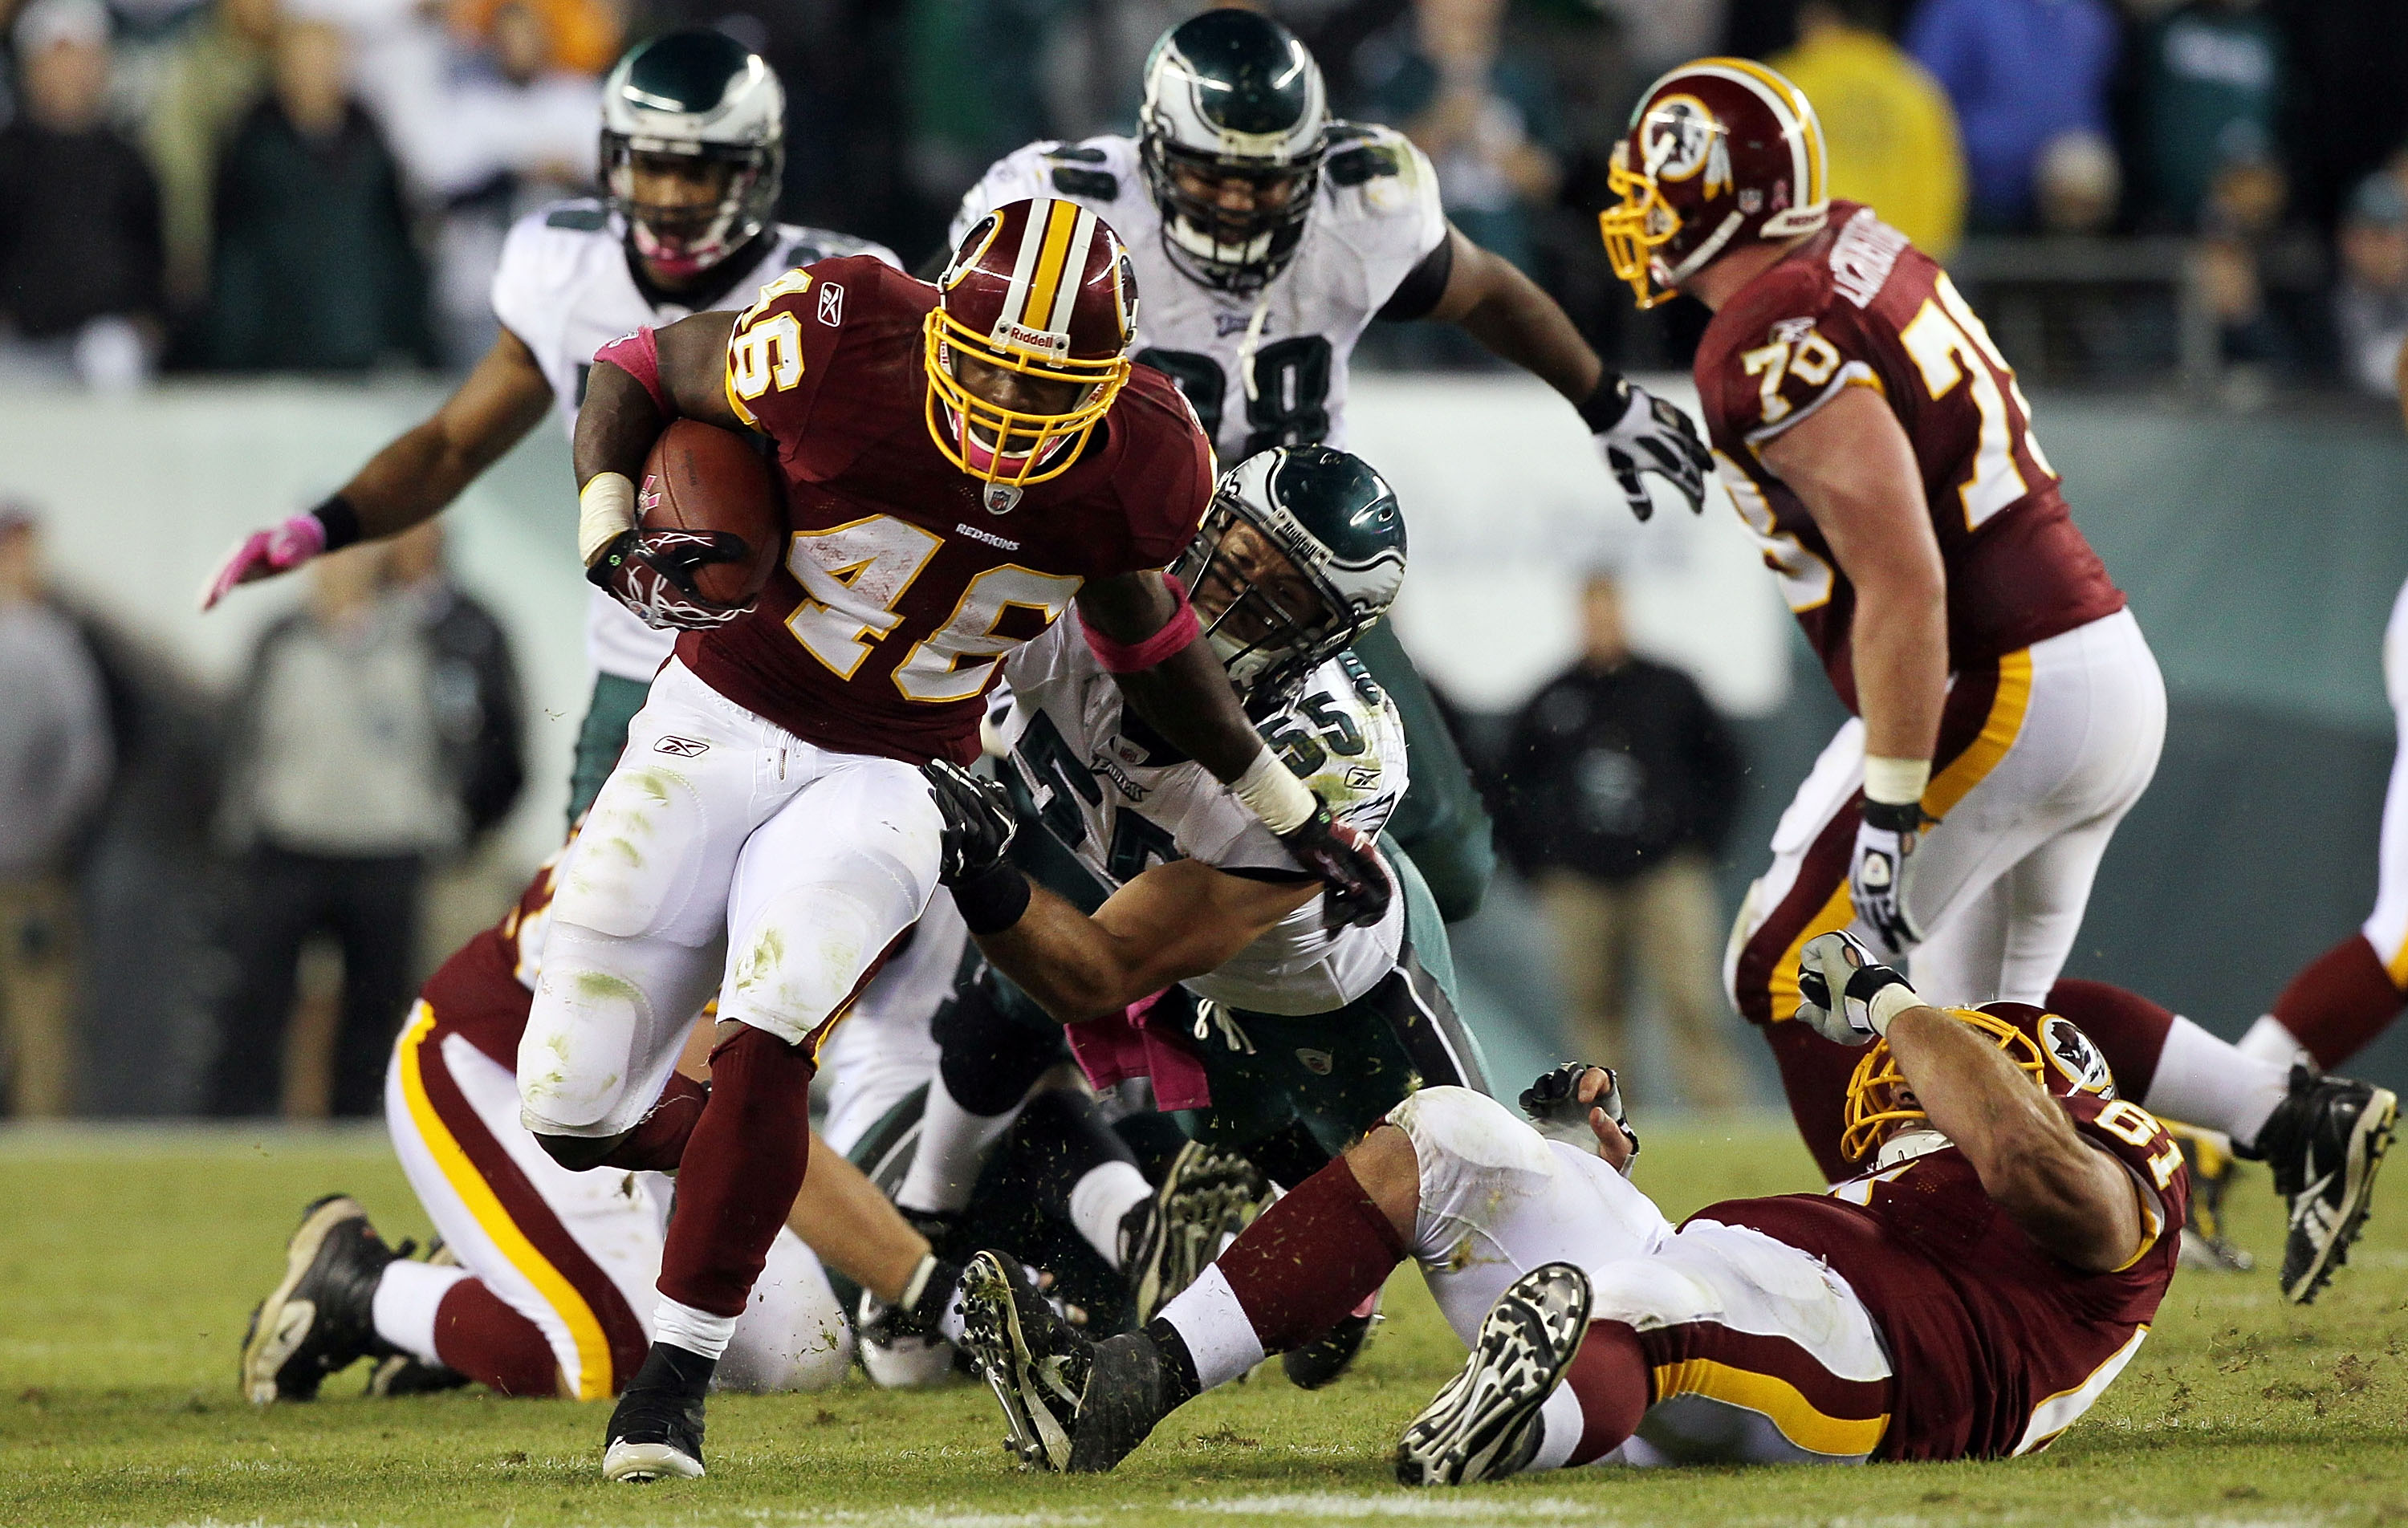 PHILADELPHIA - OCTOBER 03:  Ryan Torain #46 of the Washington Redskins runs the ball against the Philadelphia Eagles on October 3, 2010 at Lincoln Financial Field in Philadelphia, Pennsylvania. The Redskins defeated the Eagles 17-12.  (Photo by Jim McIsaa